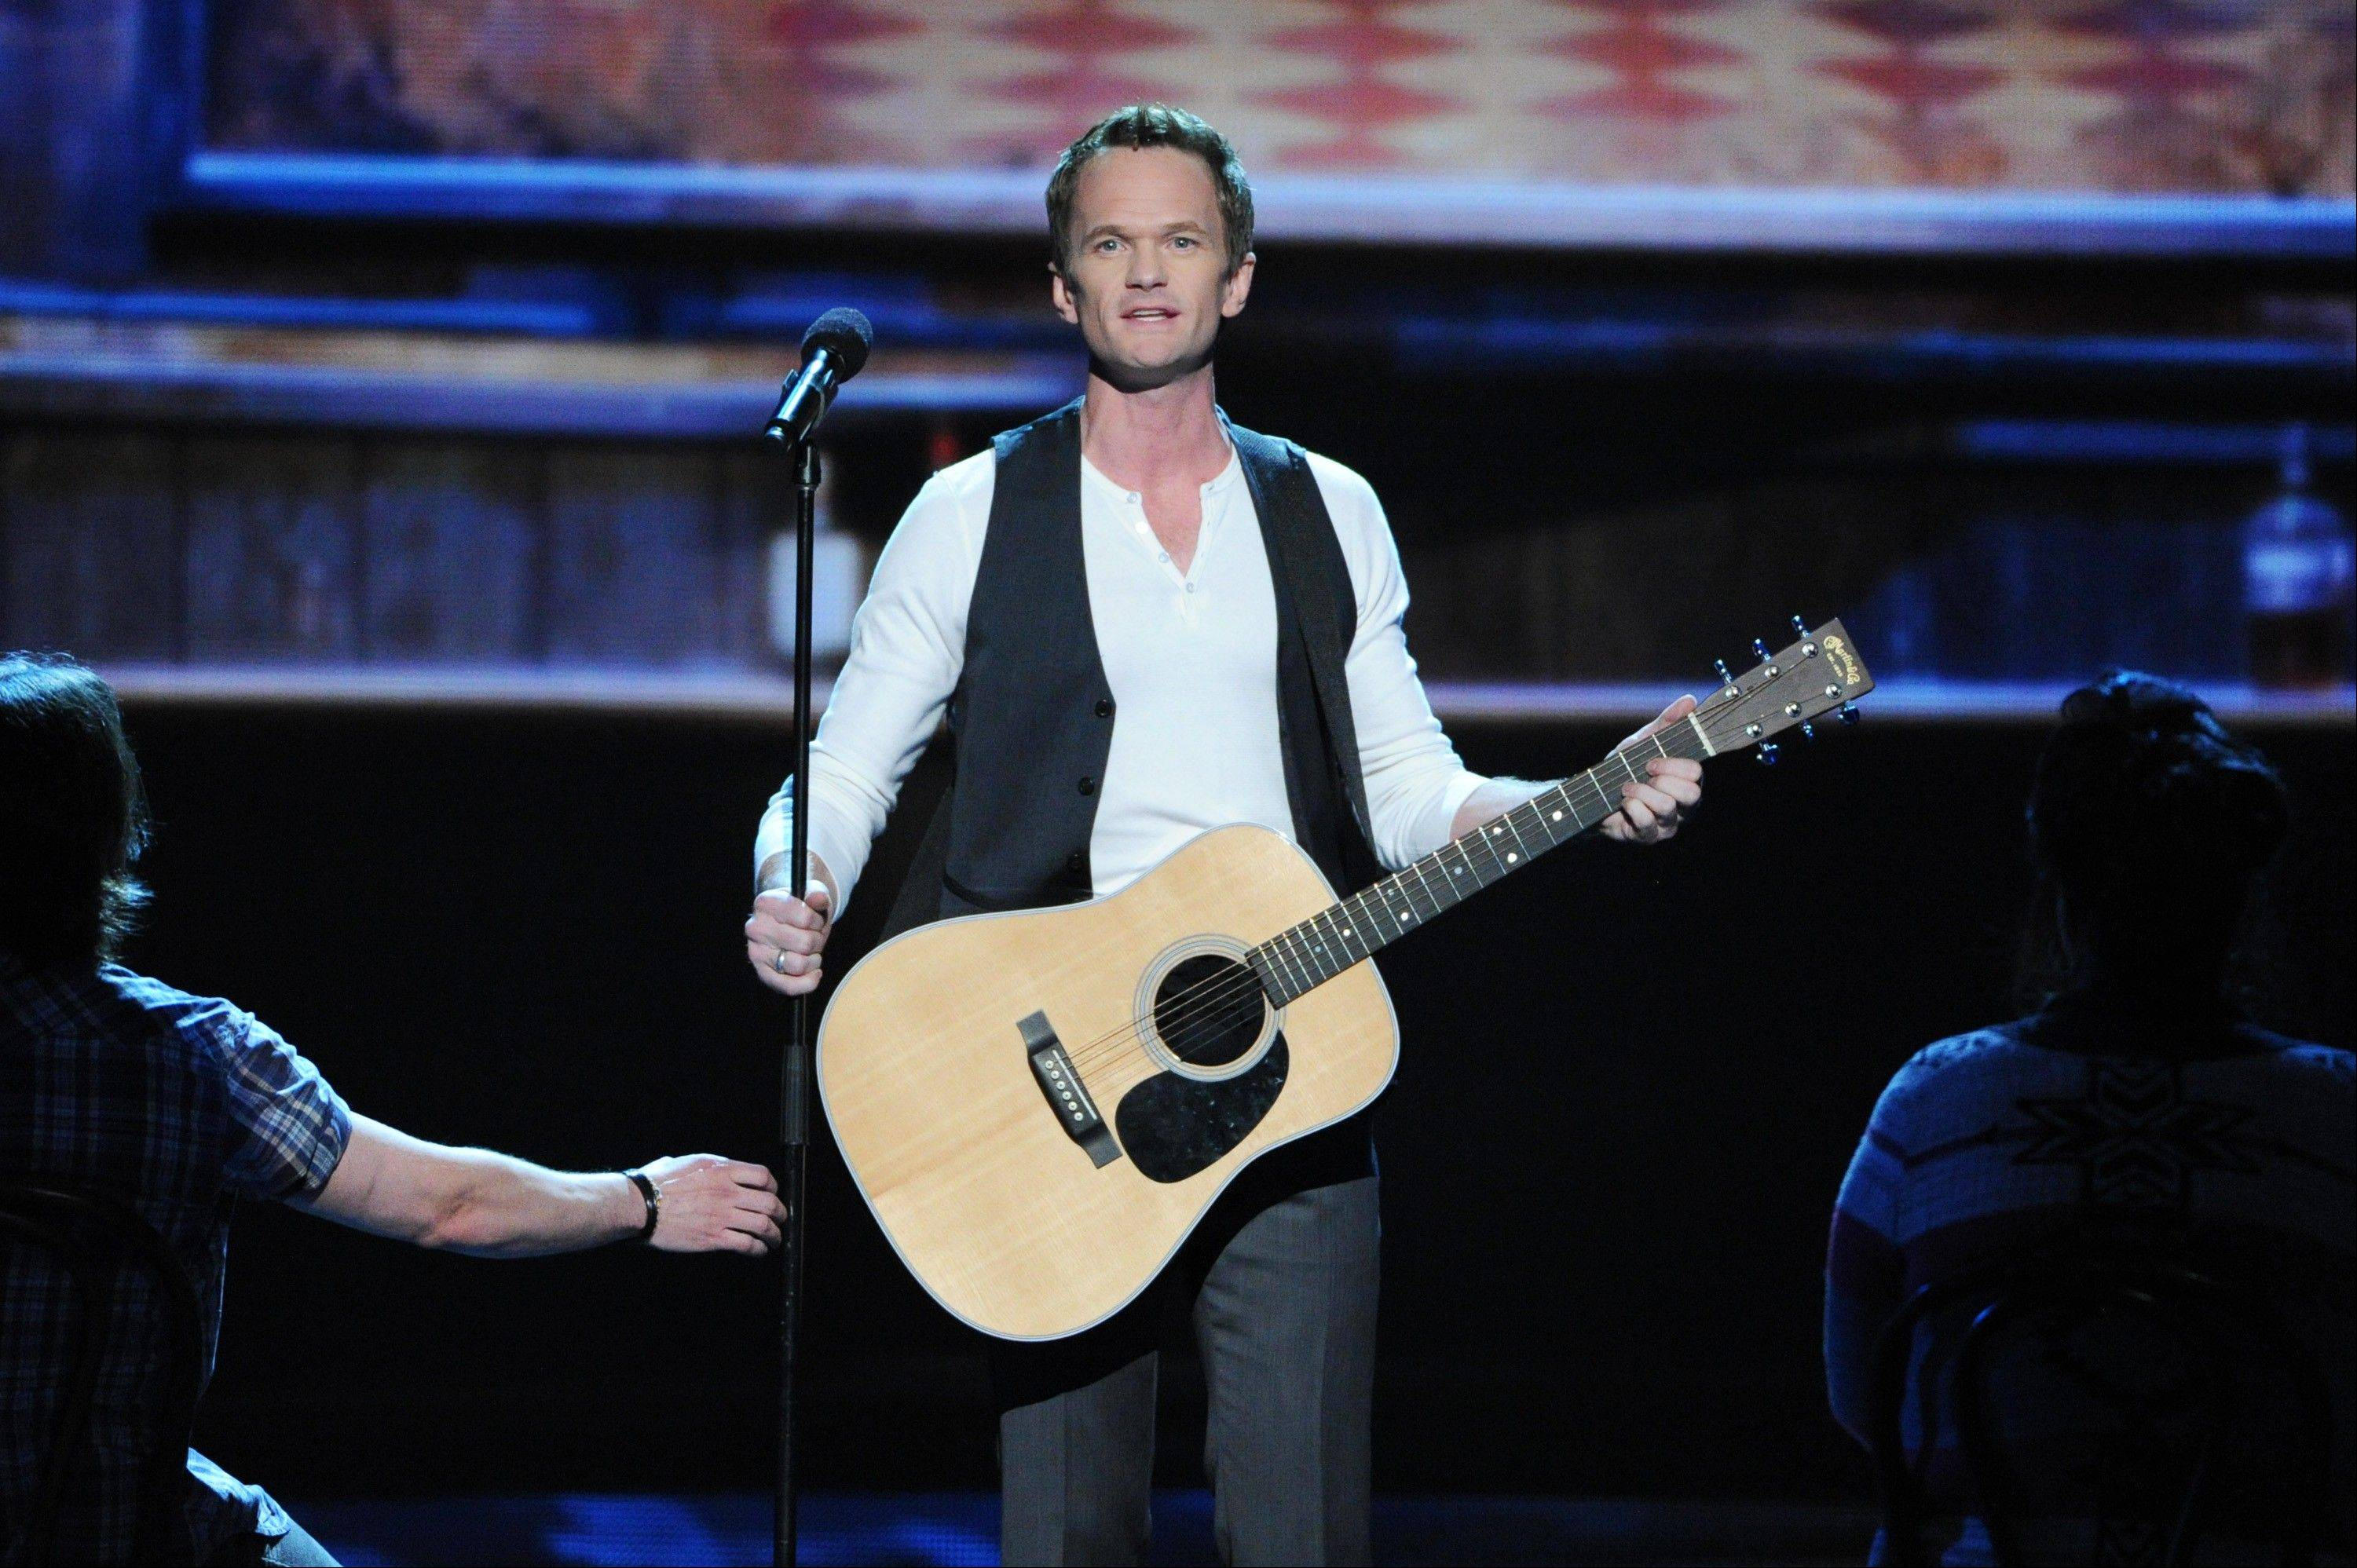 Actor Neil Patrick Harris performs on stage at the opening of the 67th Annual Tony Awards, on Sunday, June 9, 2013 in New York.